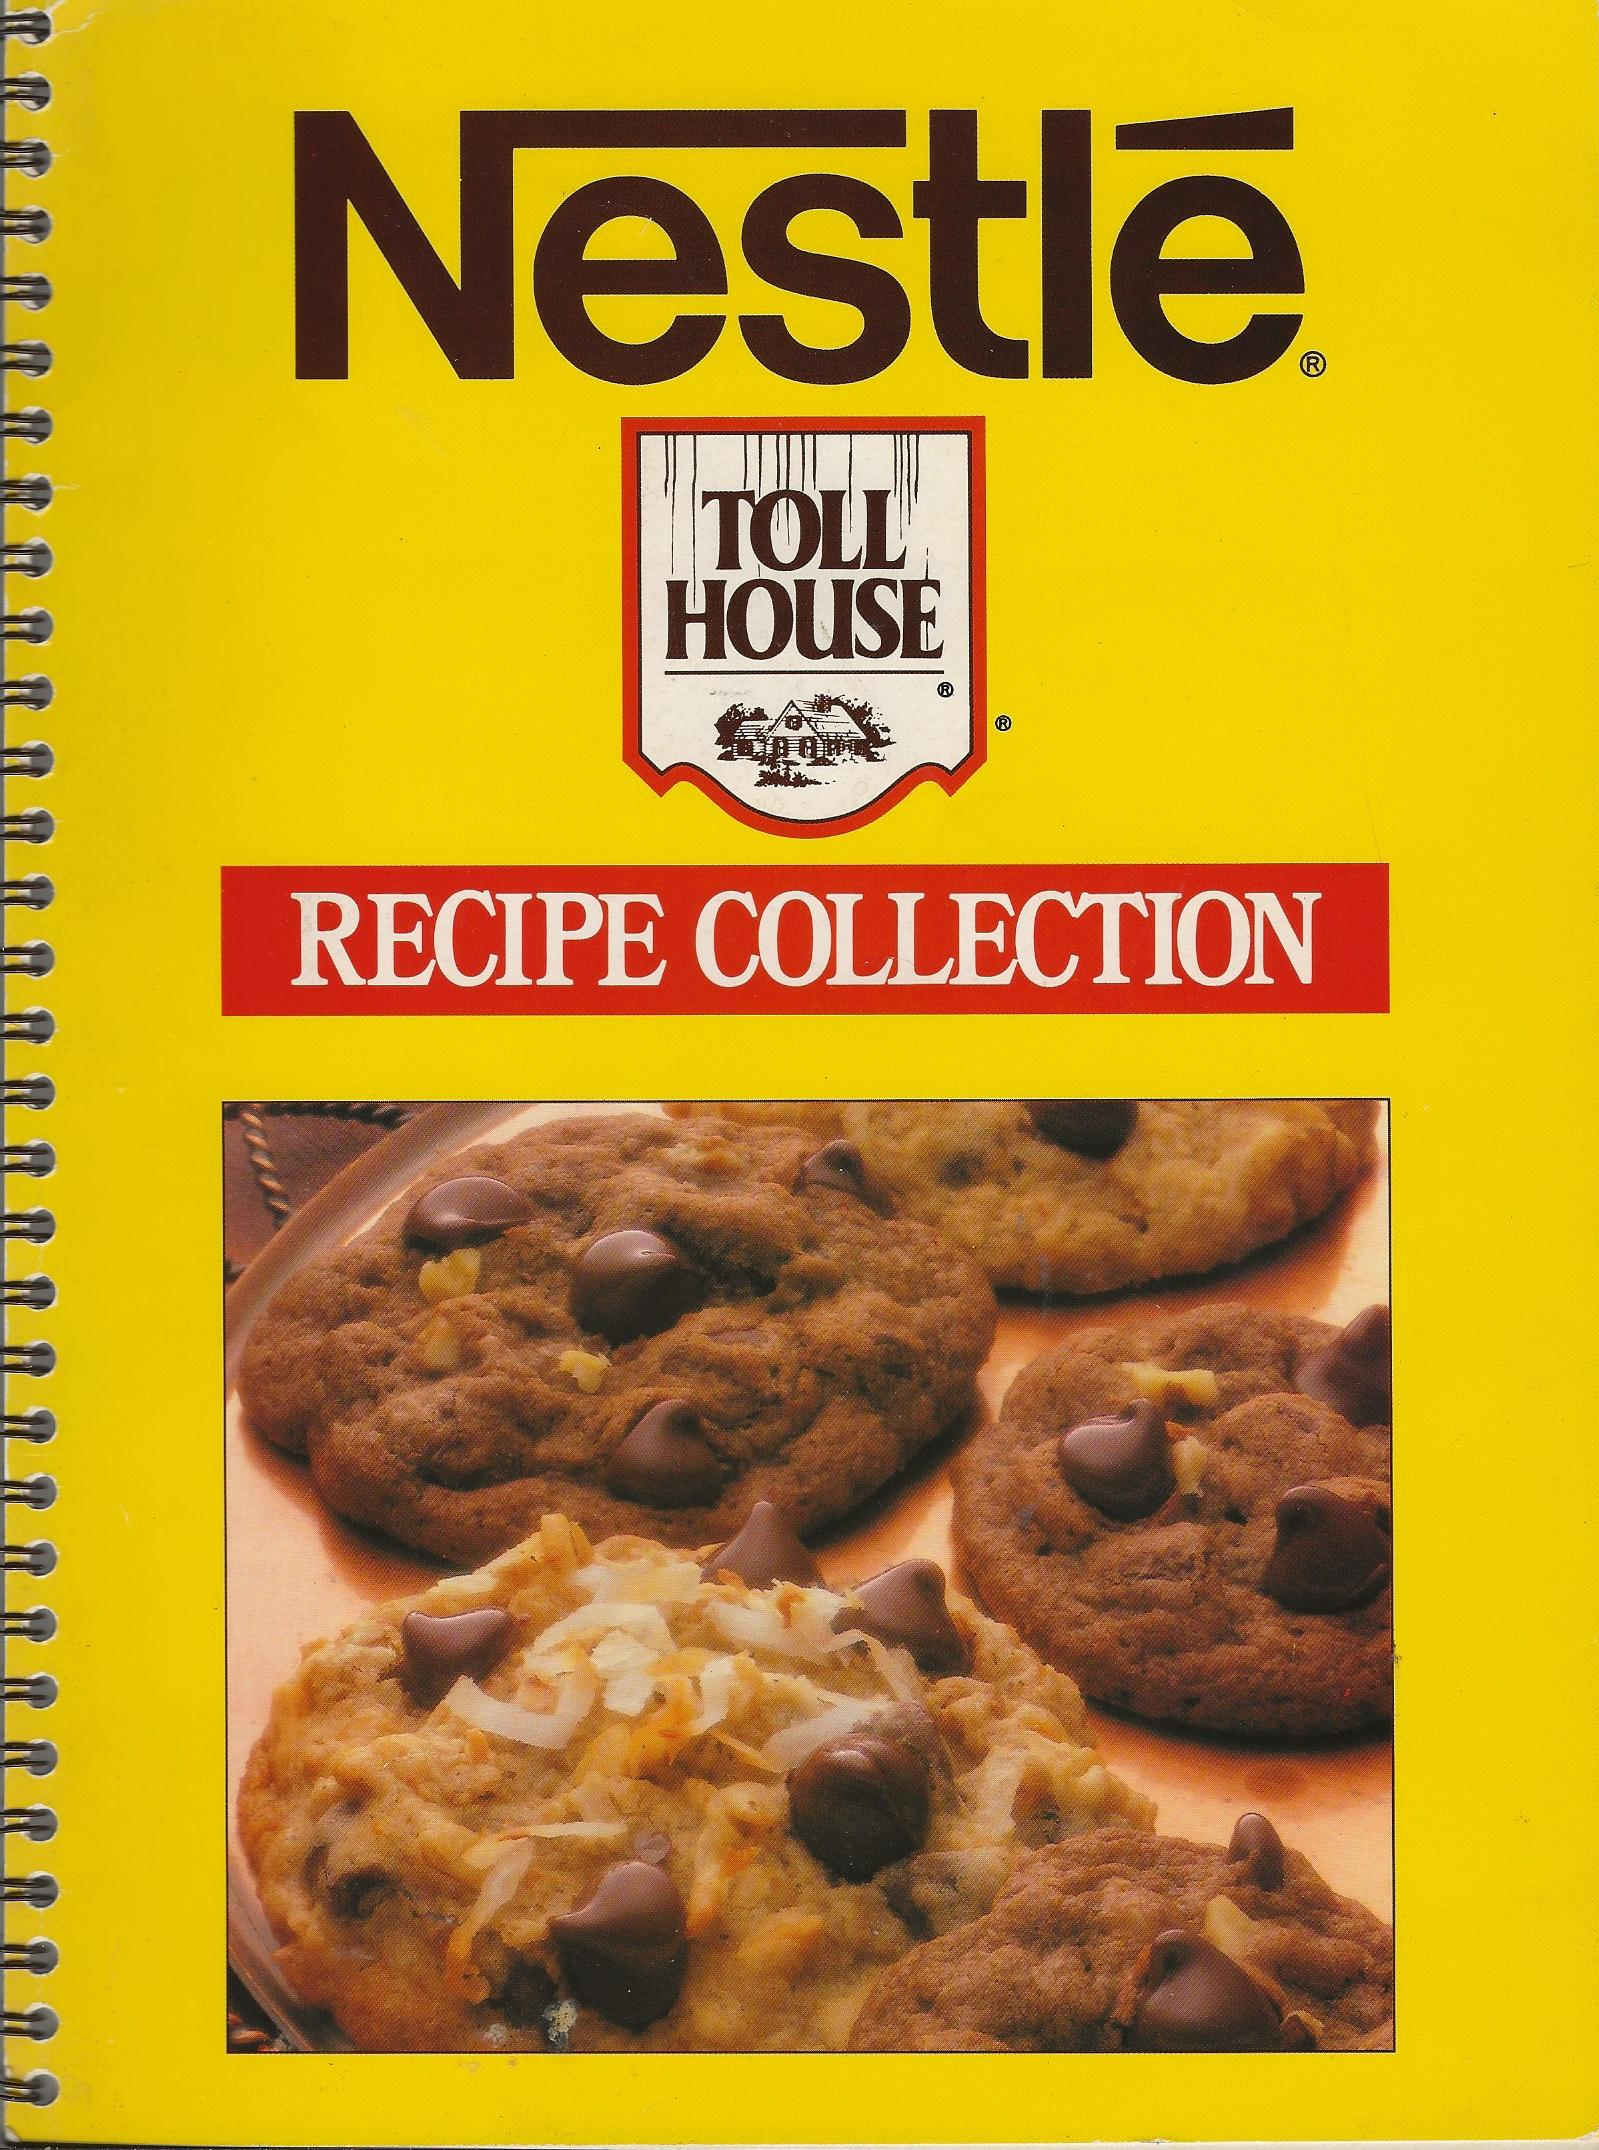 Image for NESTLE TOLL HOUSE RECIPE COLLECTION